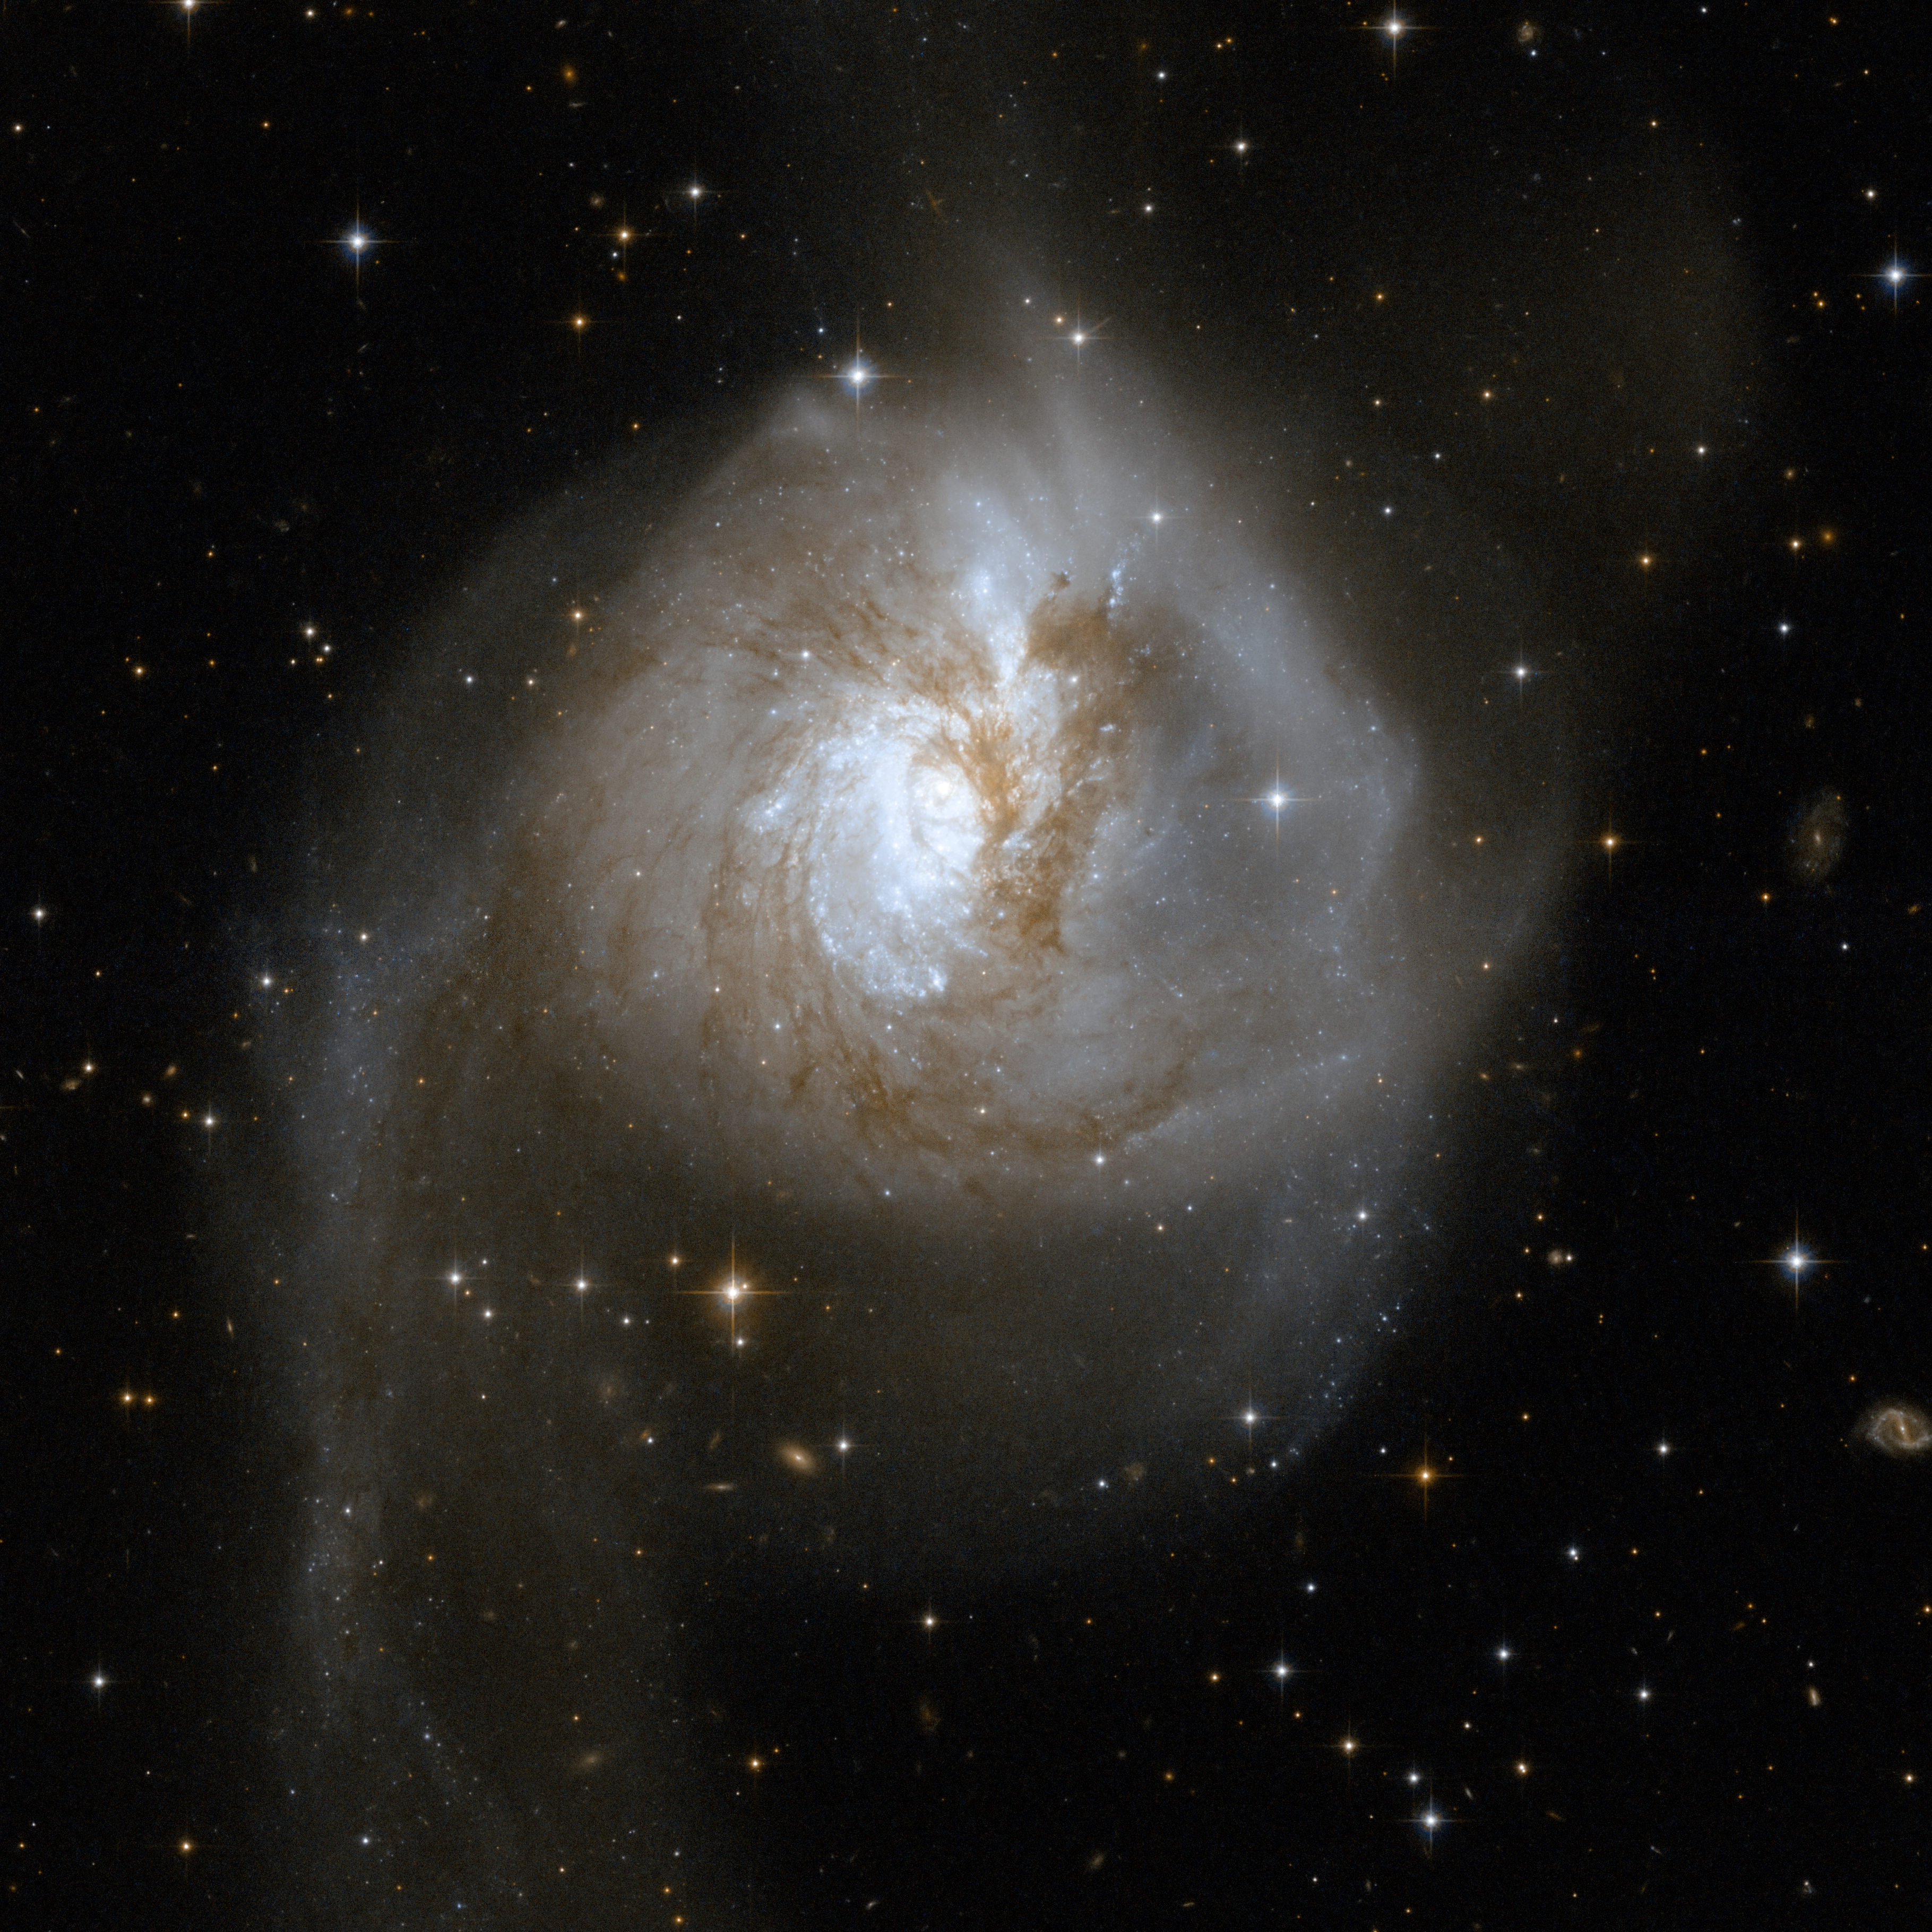 Hubble Interacting Galaxy NGC 3256 (2008-04-24)